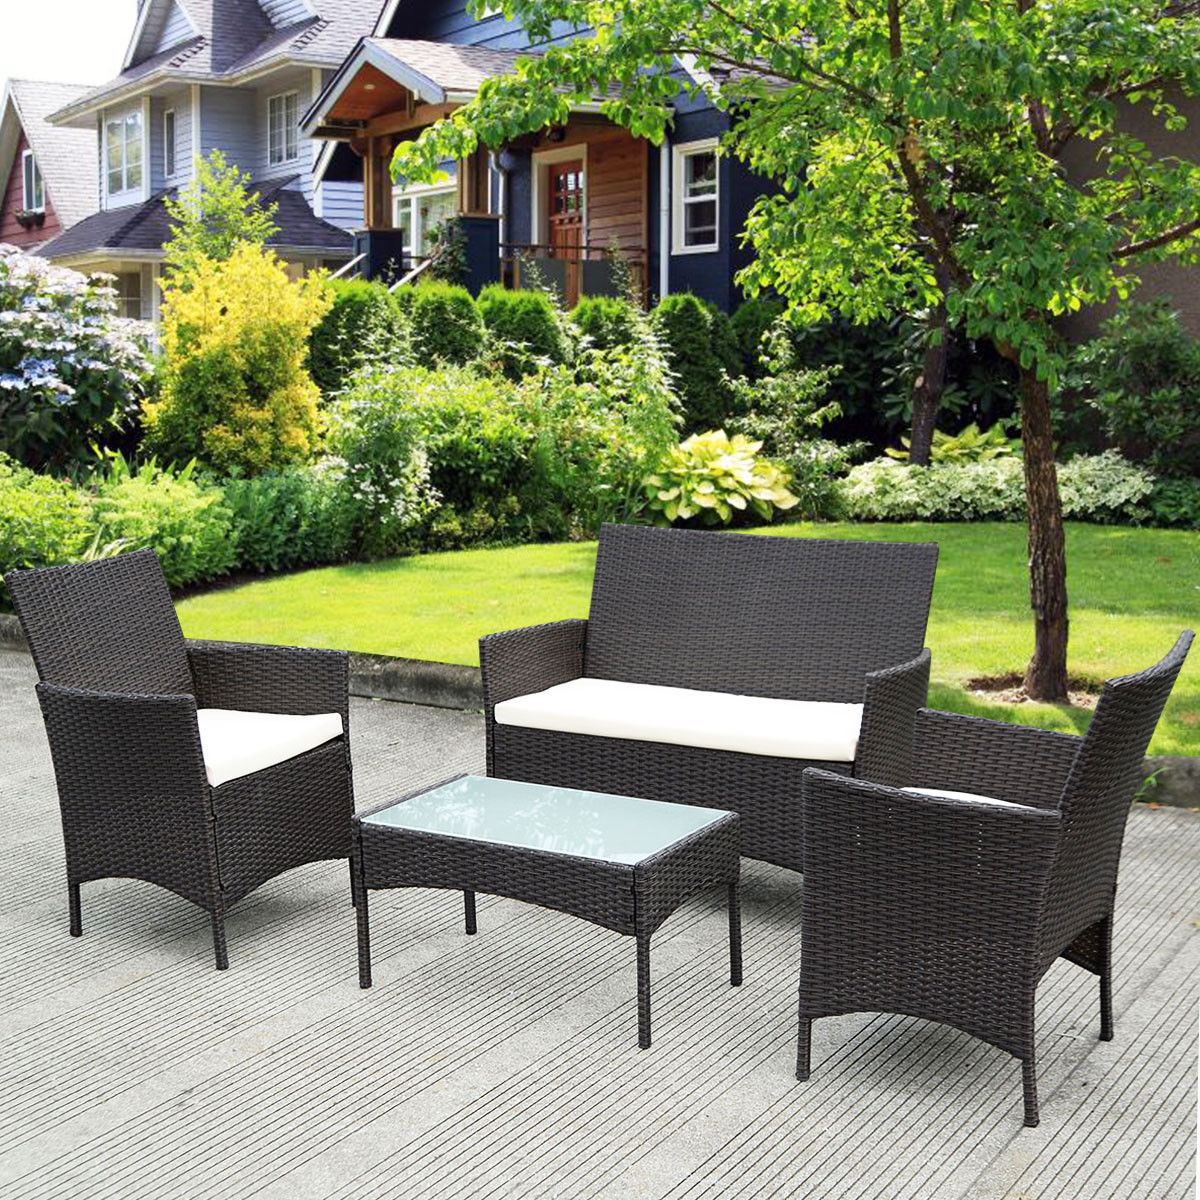 rattan furniture costway 4 pc patio rattan wicker chair sofa table set outdoor JAJEPGU